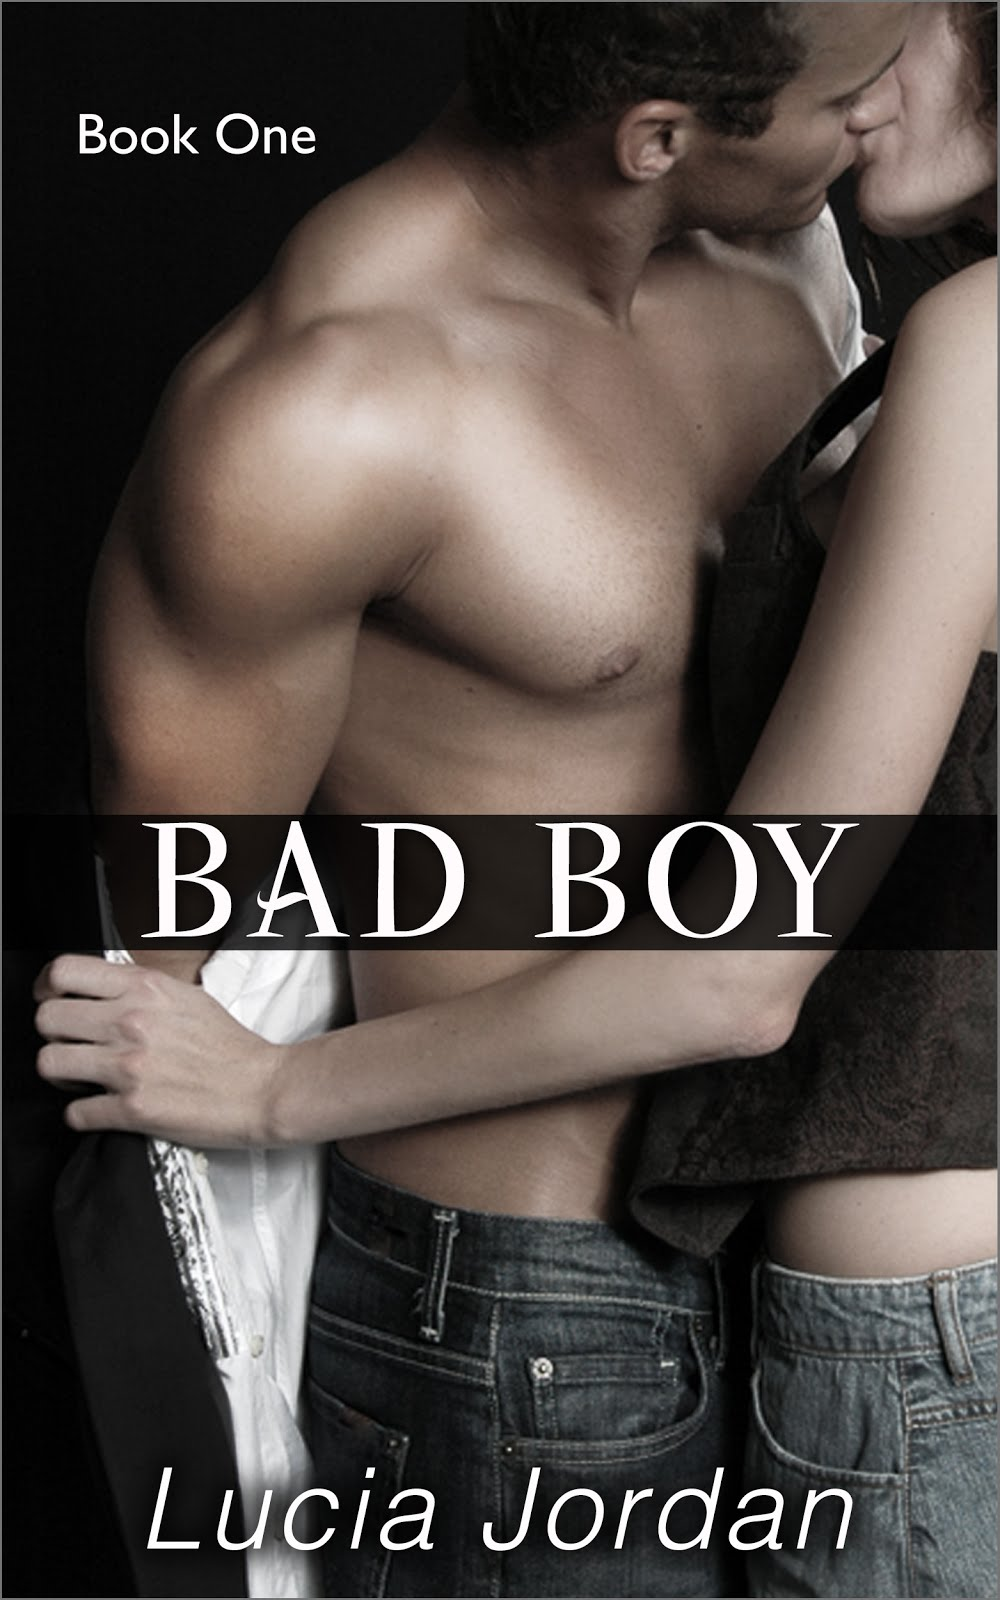 Get hooked on the Bad Boy series